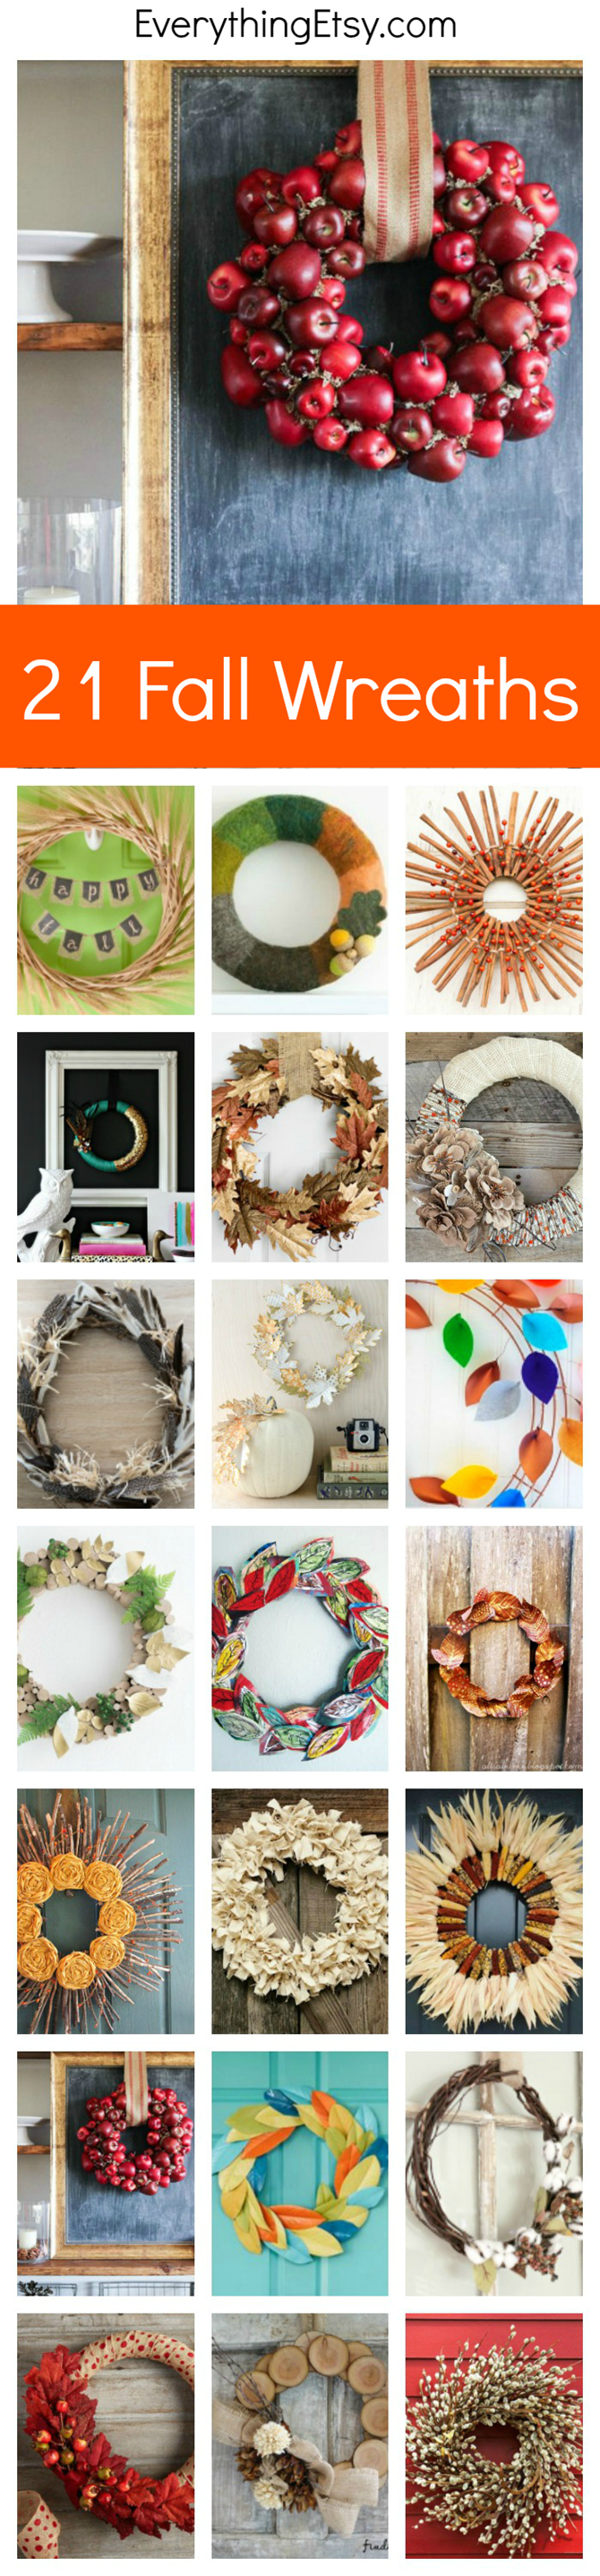 21 Fall Wreath Ideas to DIY Right Now! EverythingEtsy